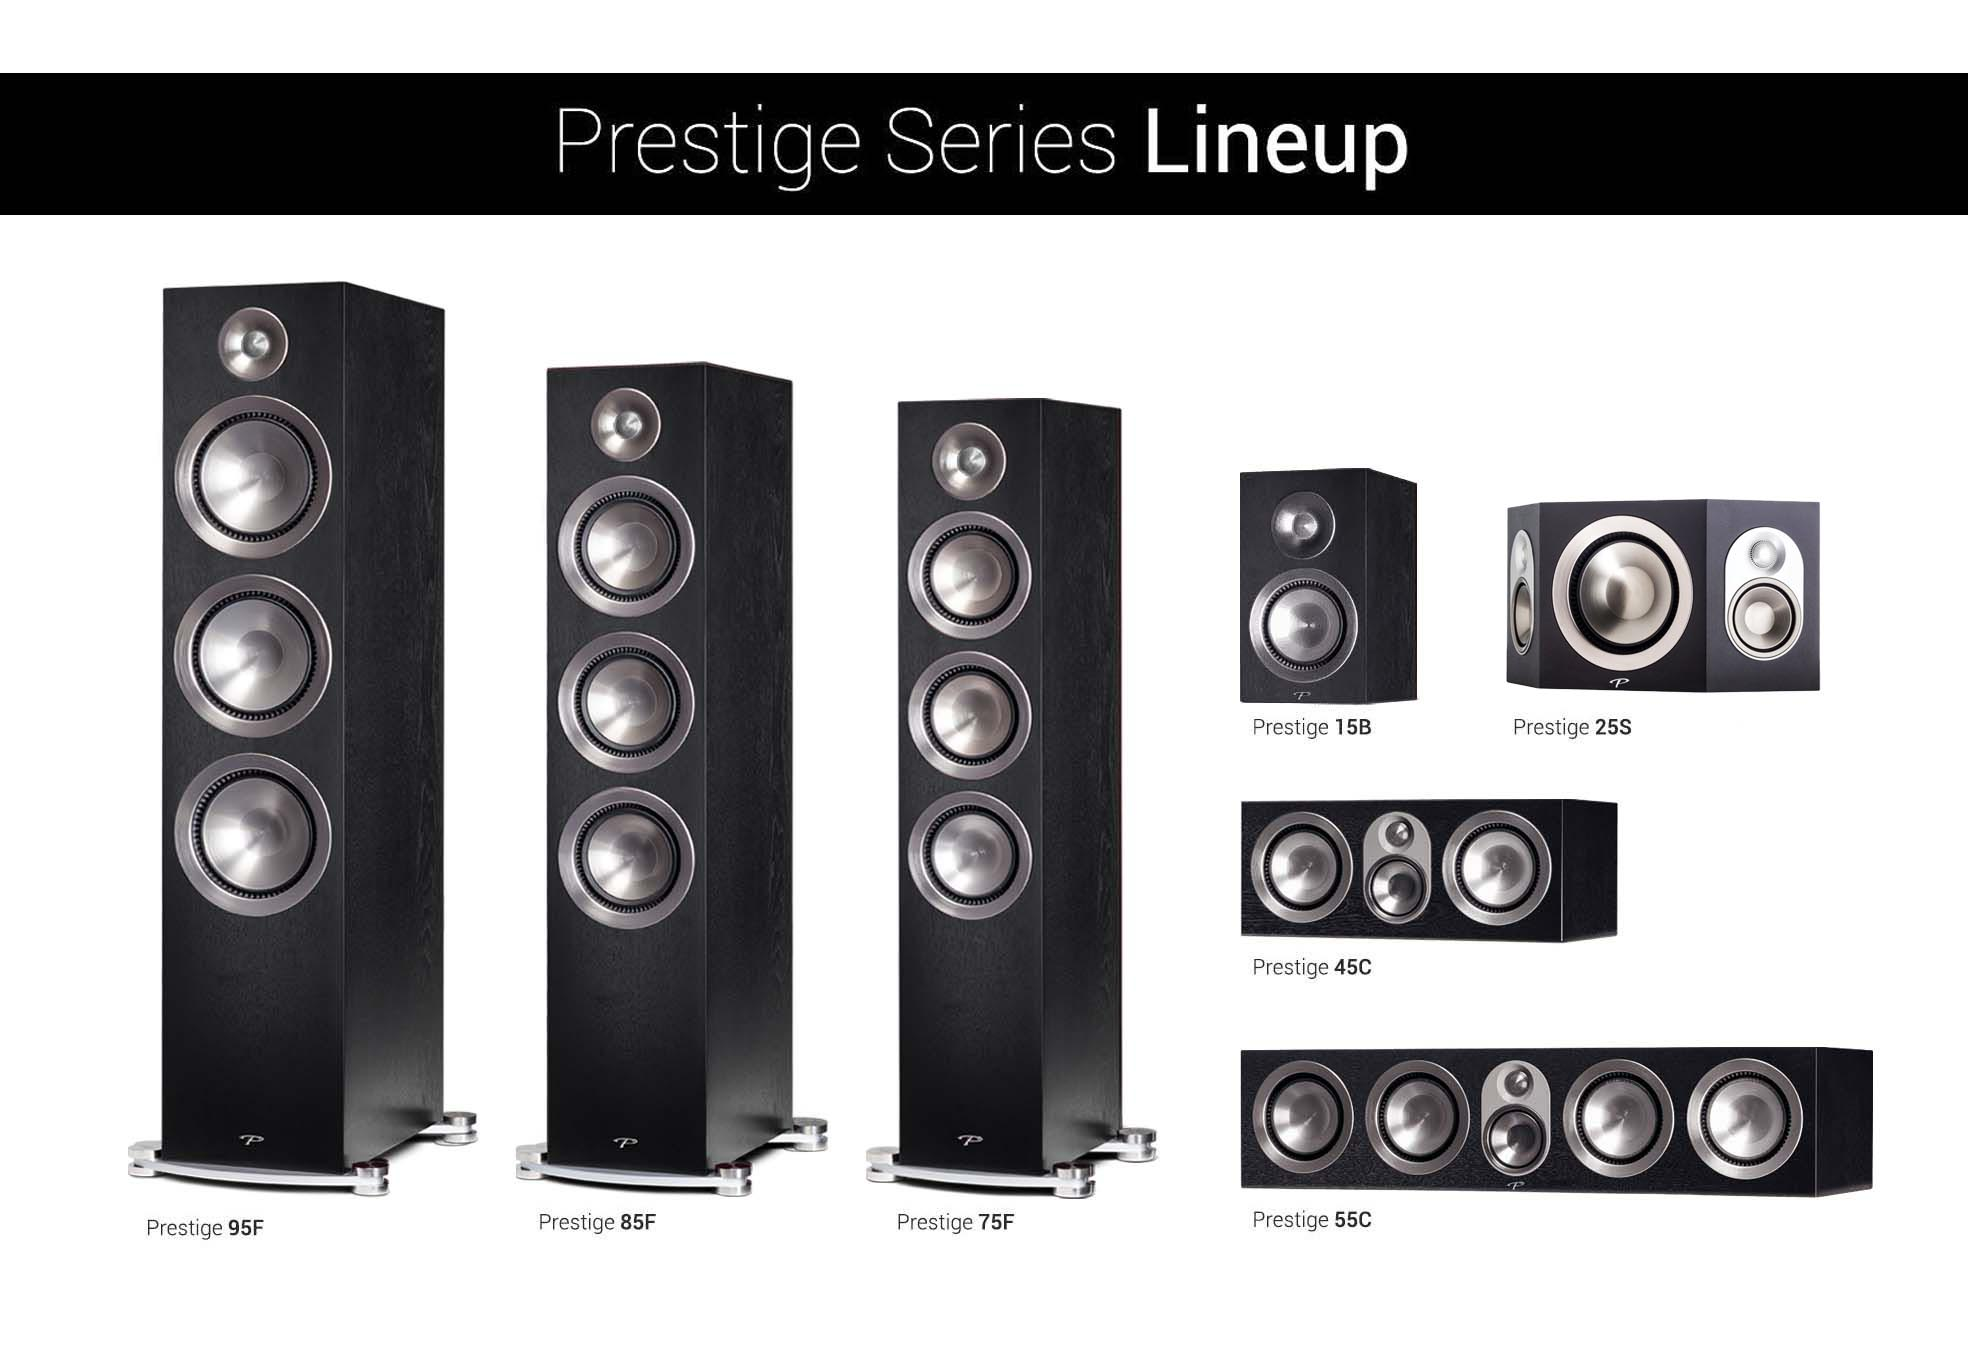 Prestige Black walnut Lineup with Black 25s